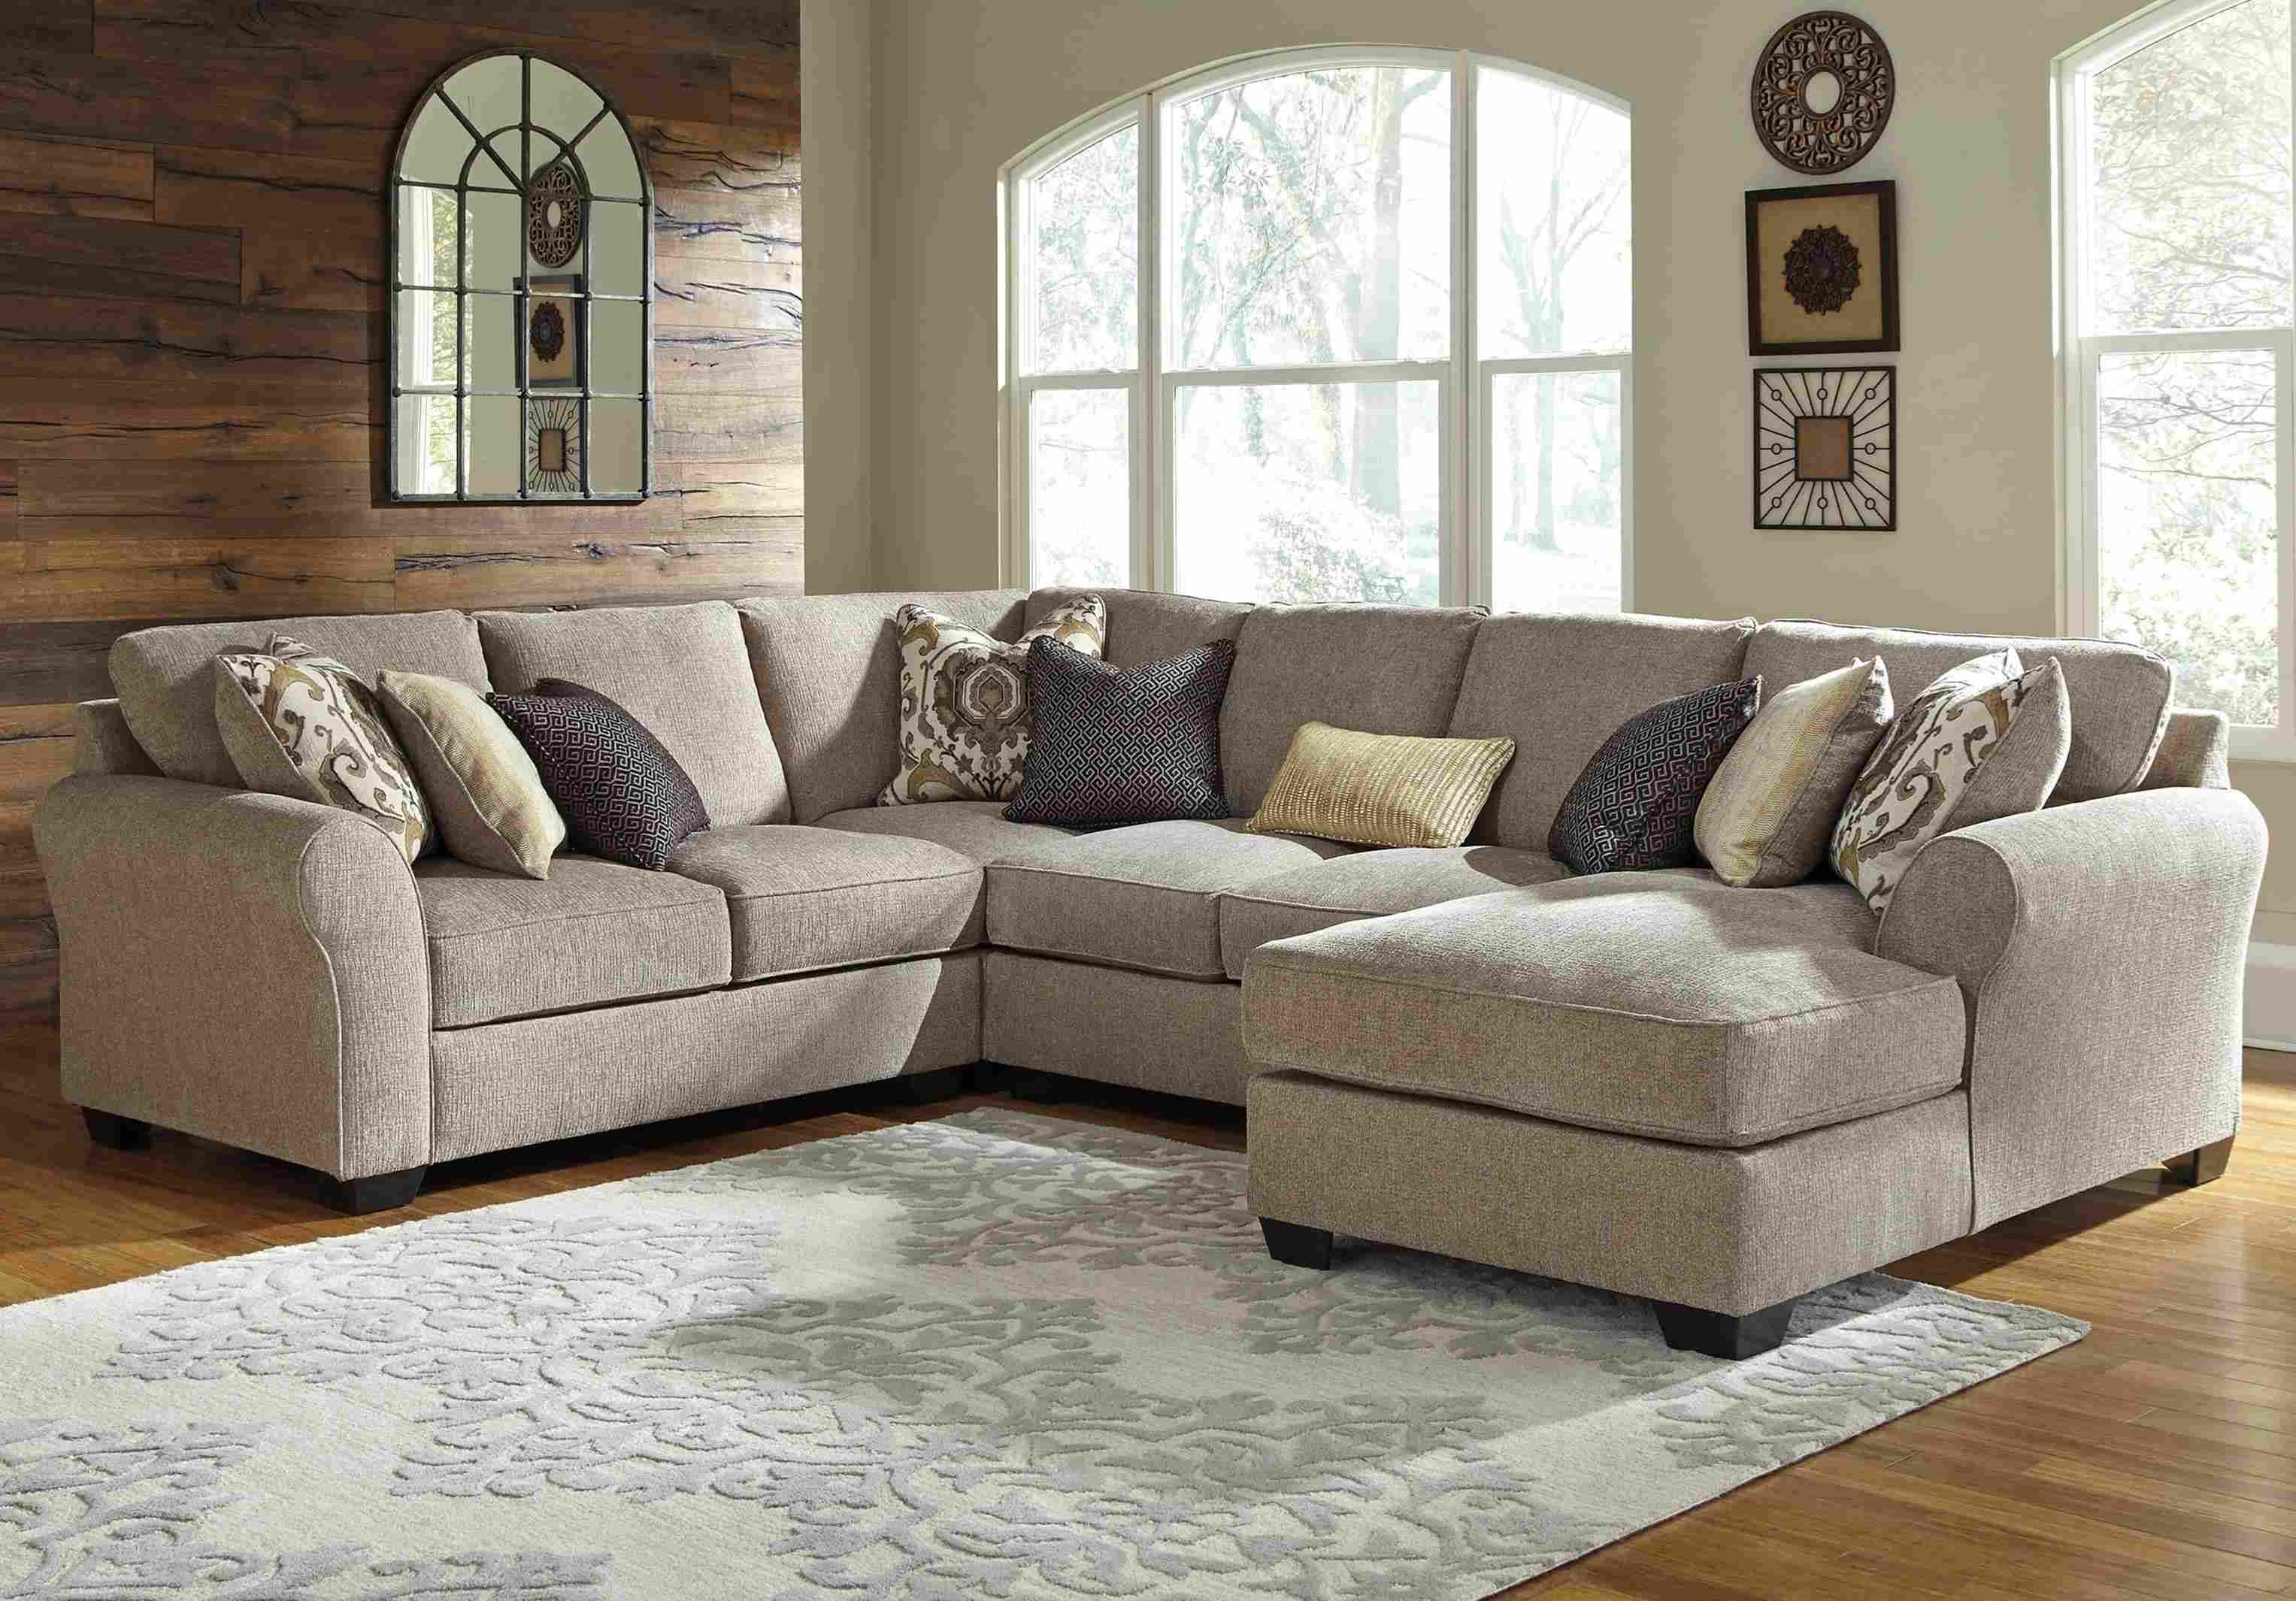 Sofas : Big Sectional Couch Blue Sectional Large Sectional Sectional With Delano 2 Piece Sectionals With Laf Oversized Chaise (Image 25 of 25)